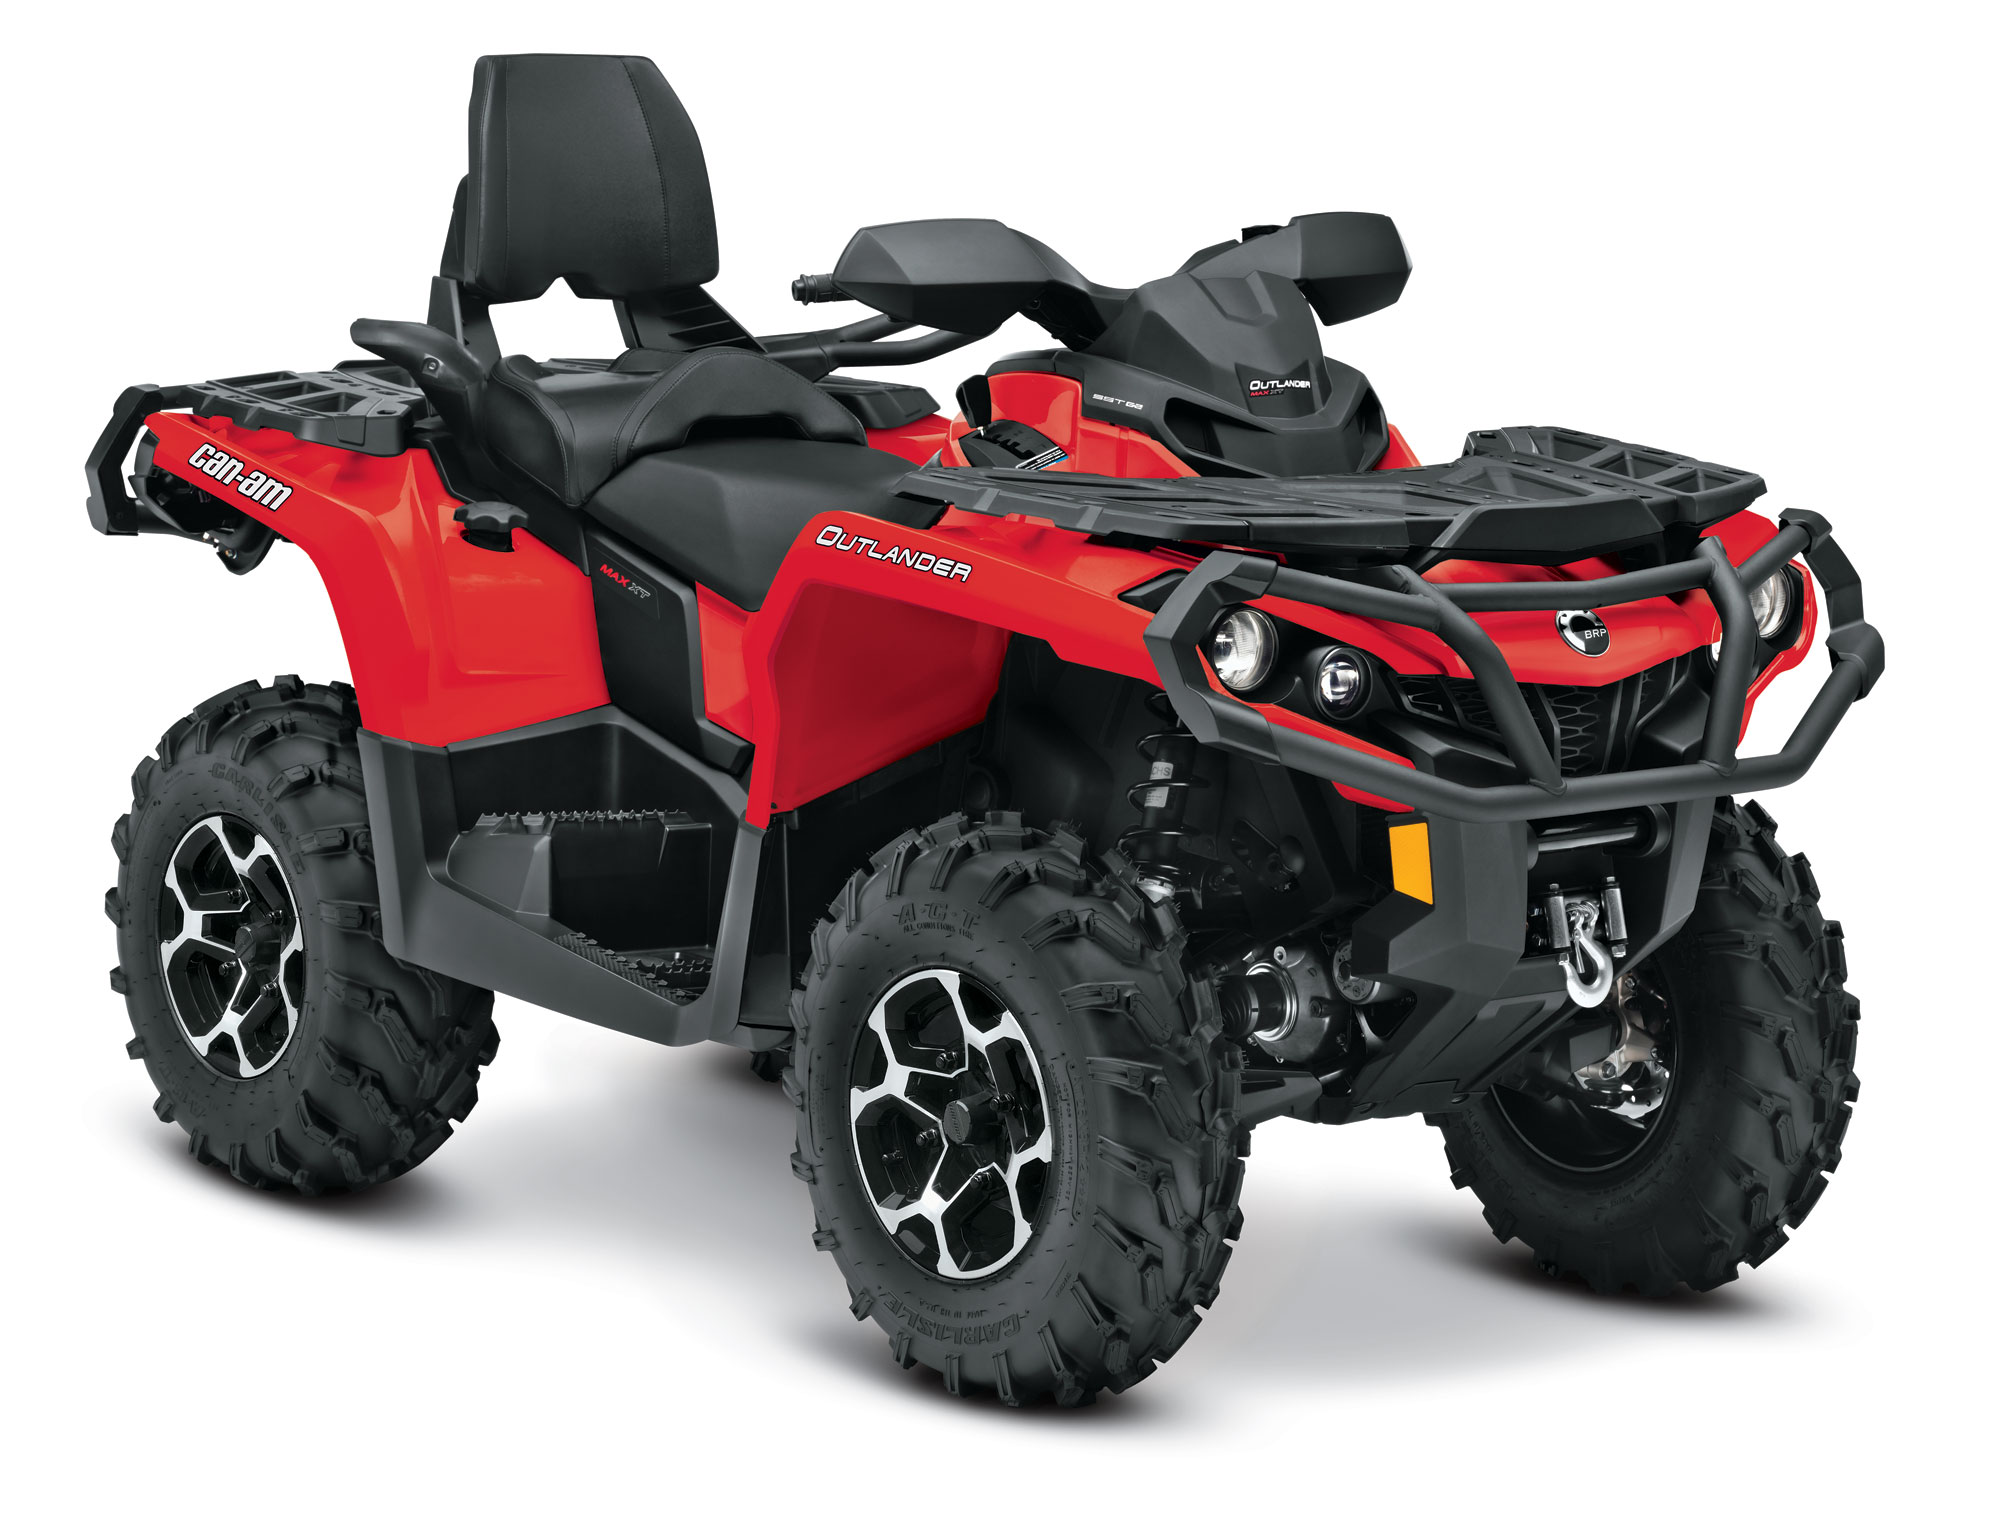 2013 Can-Am Outlander MAX XT 500 Review